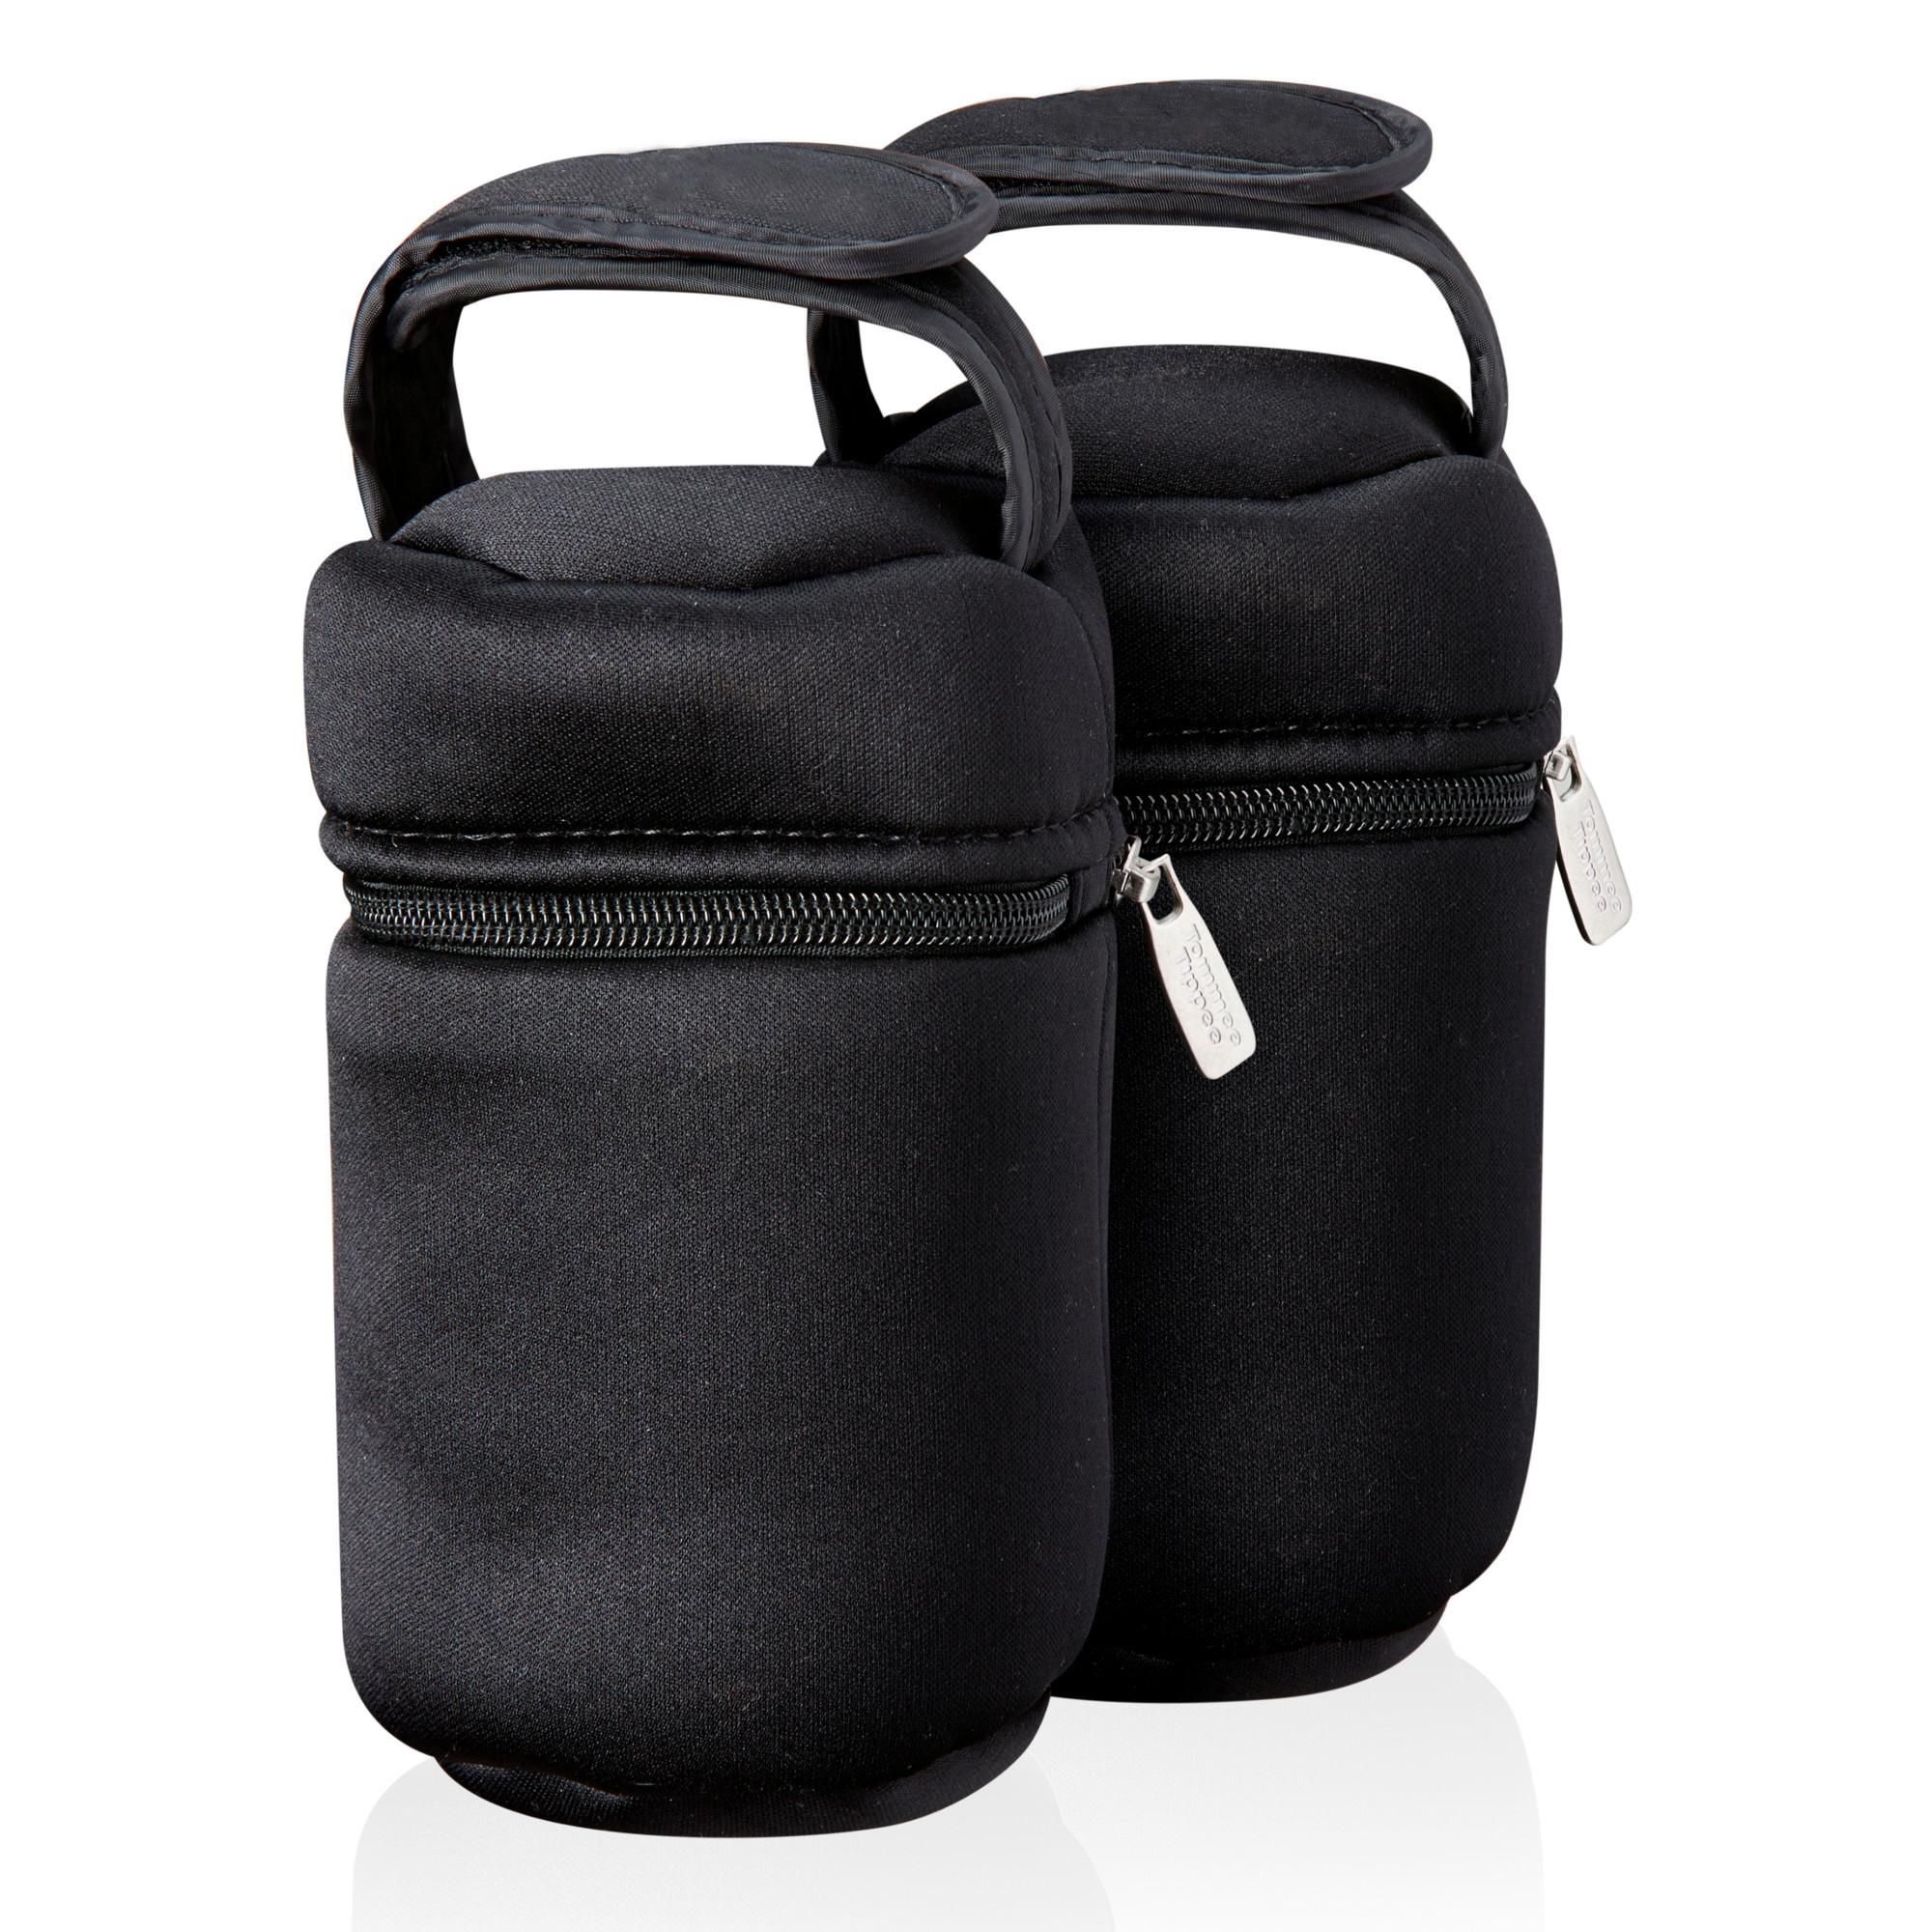 Tommee Tip Insulated Bottle Bags X 2 Co Uk Baby Aff